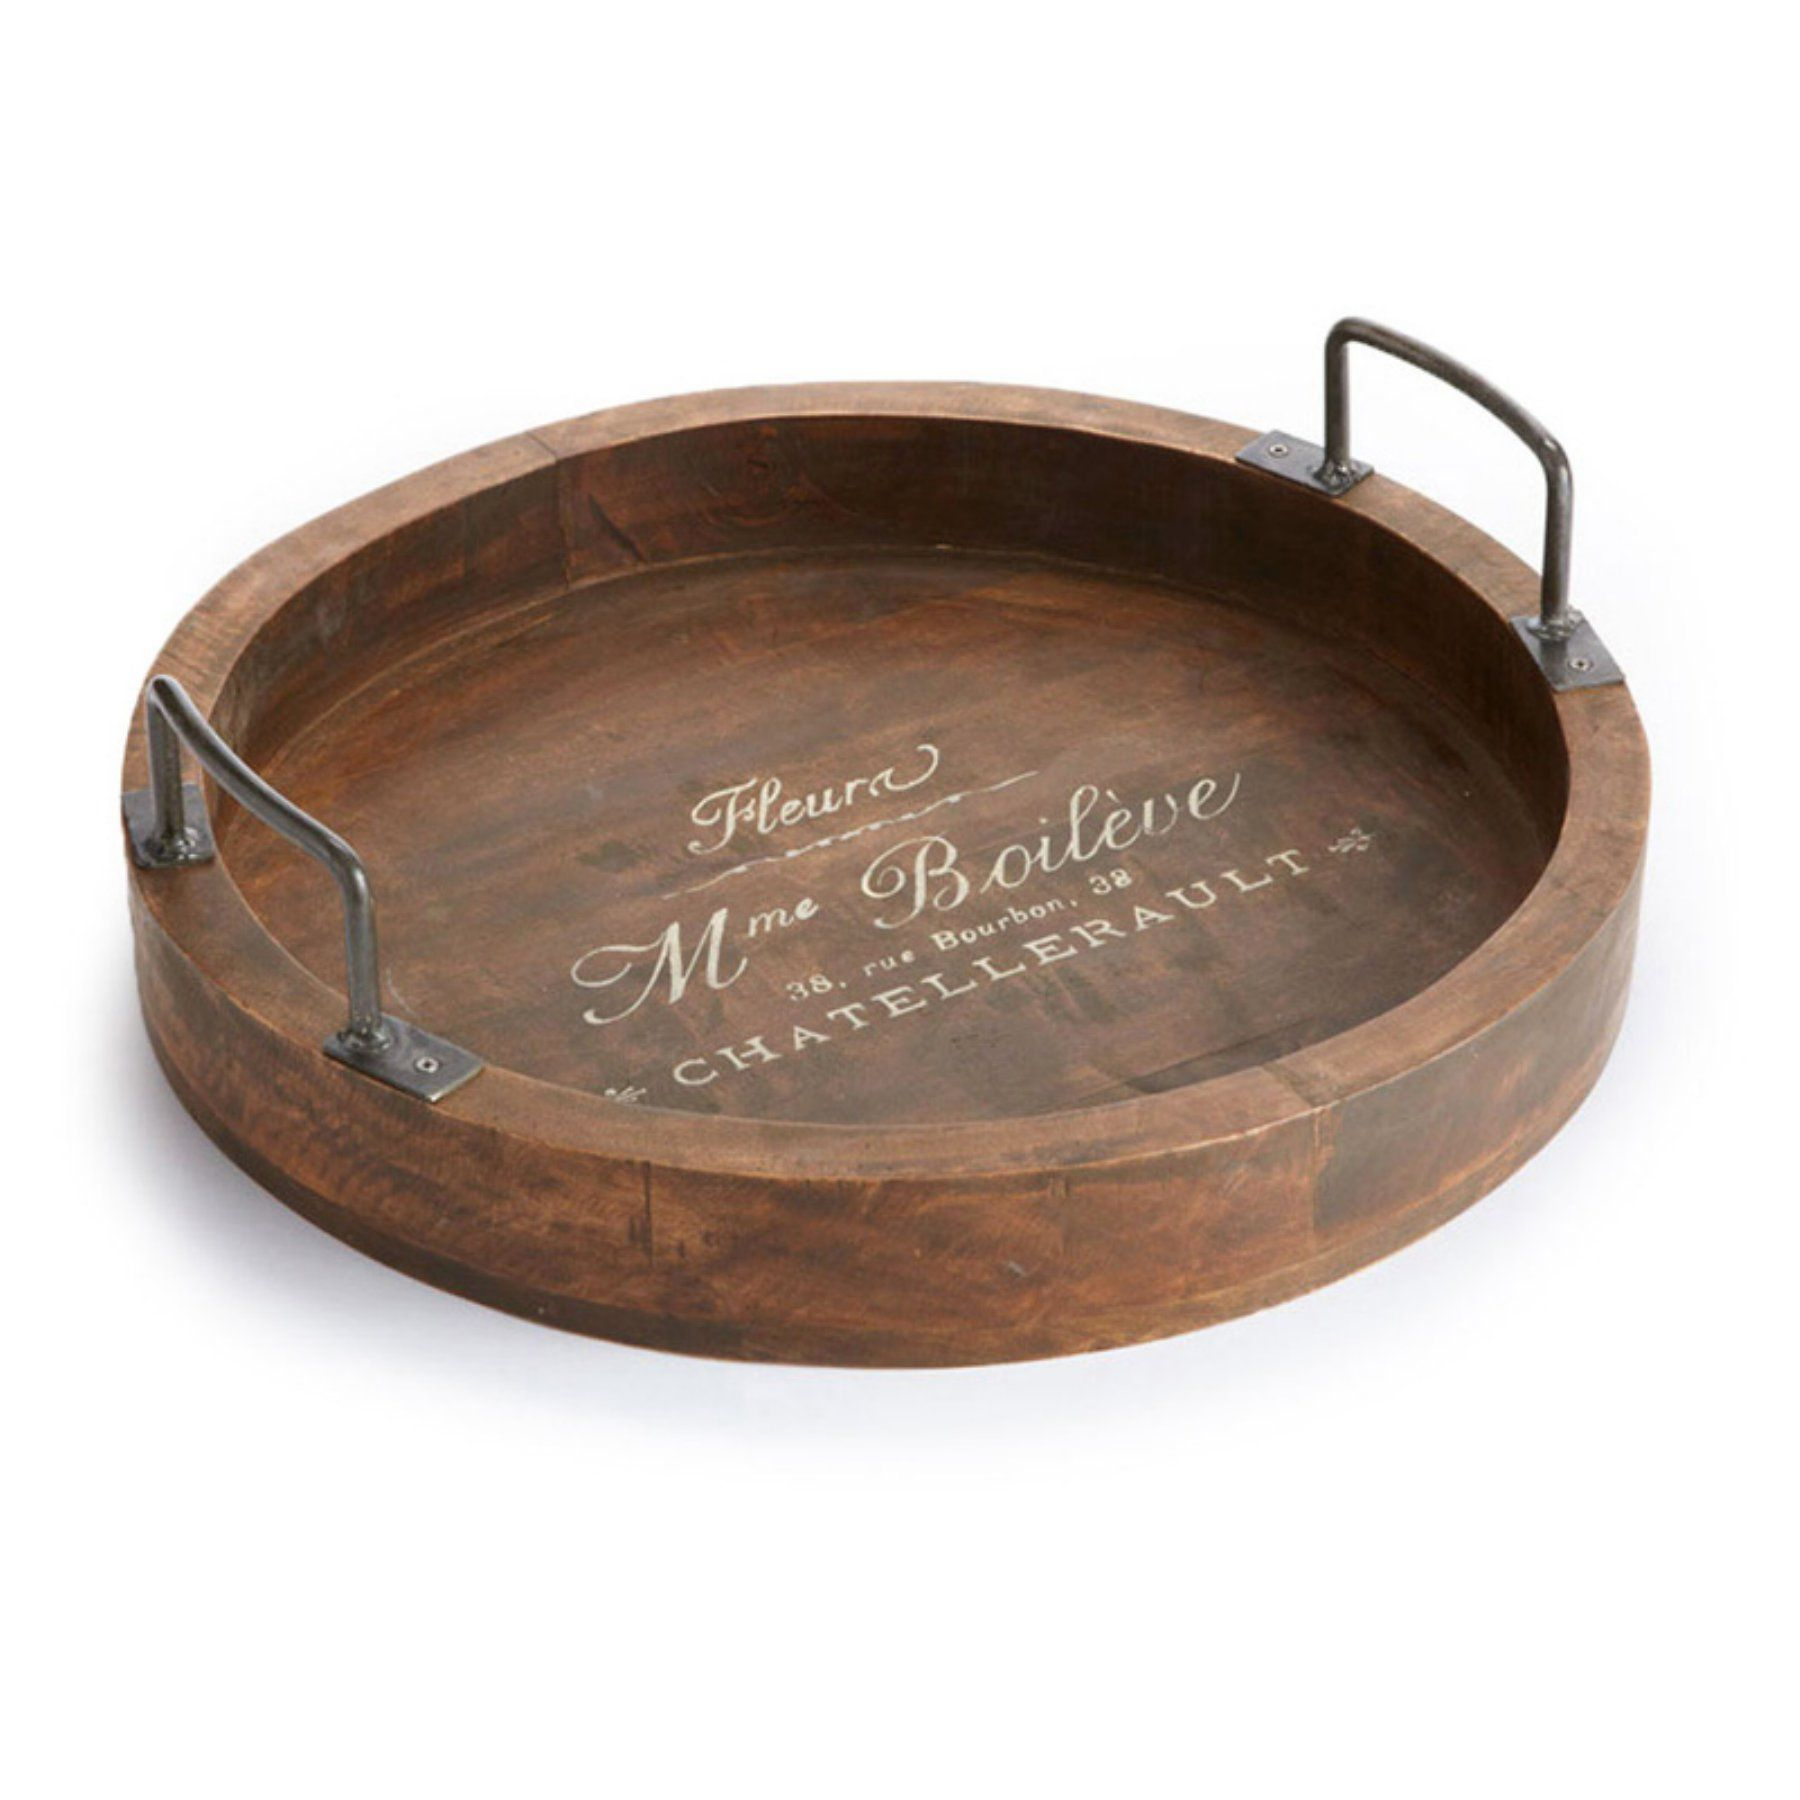 Napa Home and Garden Decorative Tray with Handles - 2683 | Pinterest ...